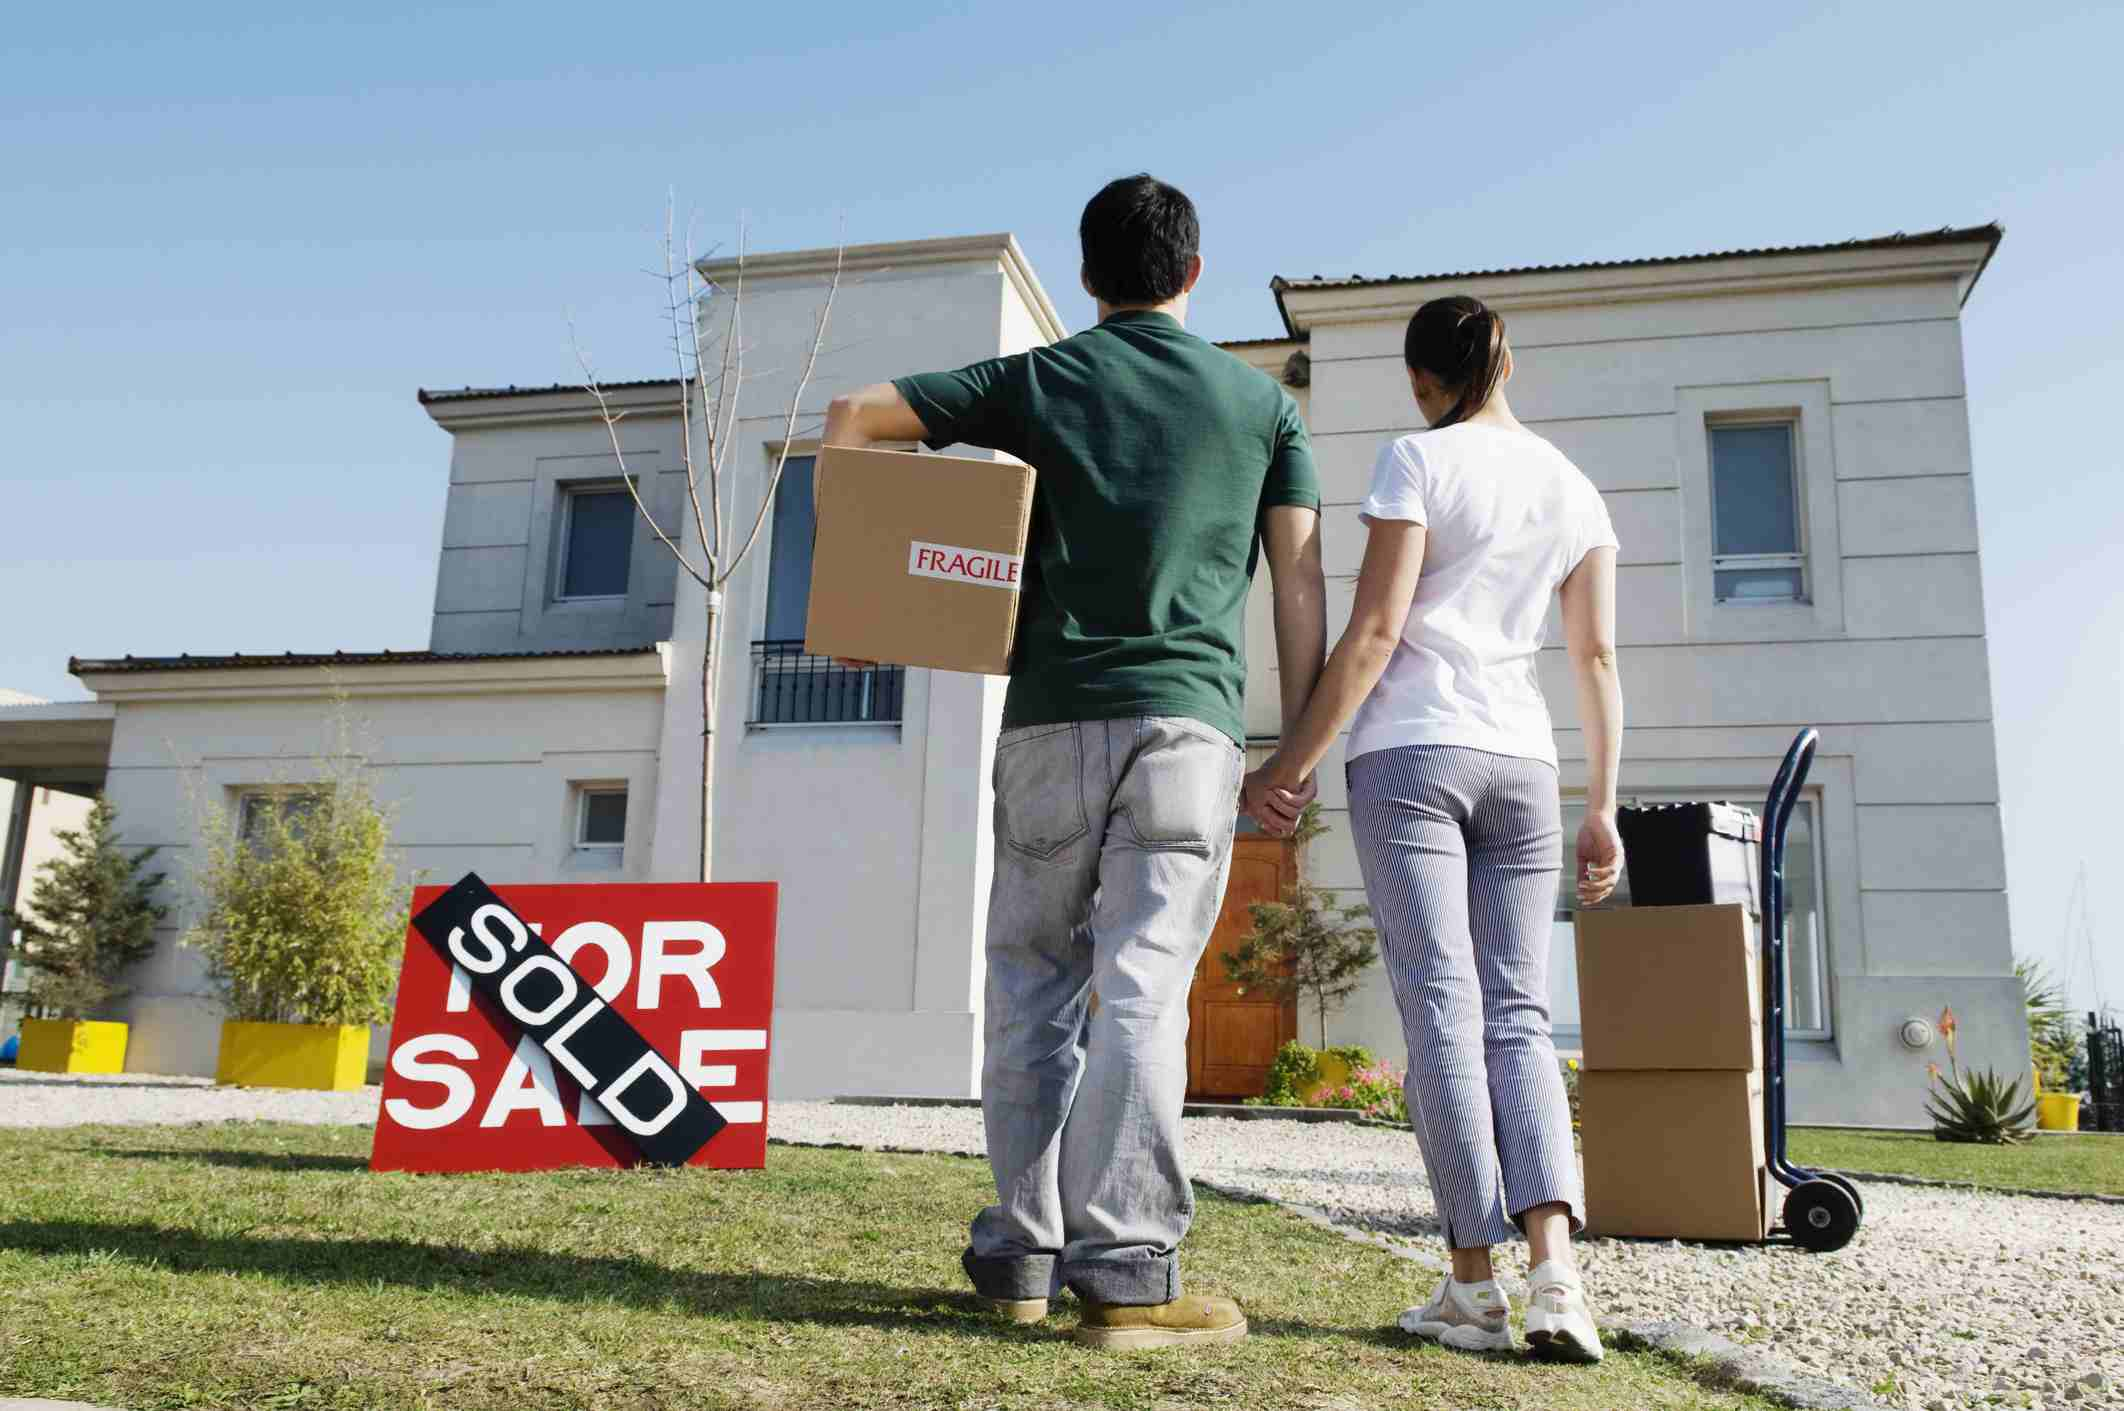 a young couple looking at their new house near the for sale sign with